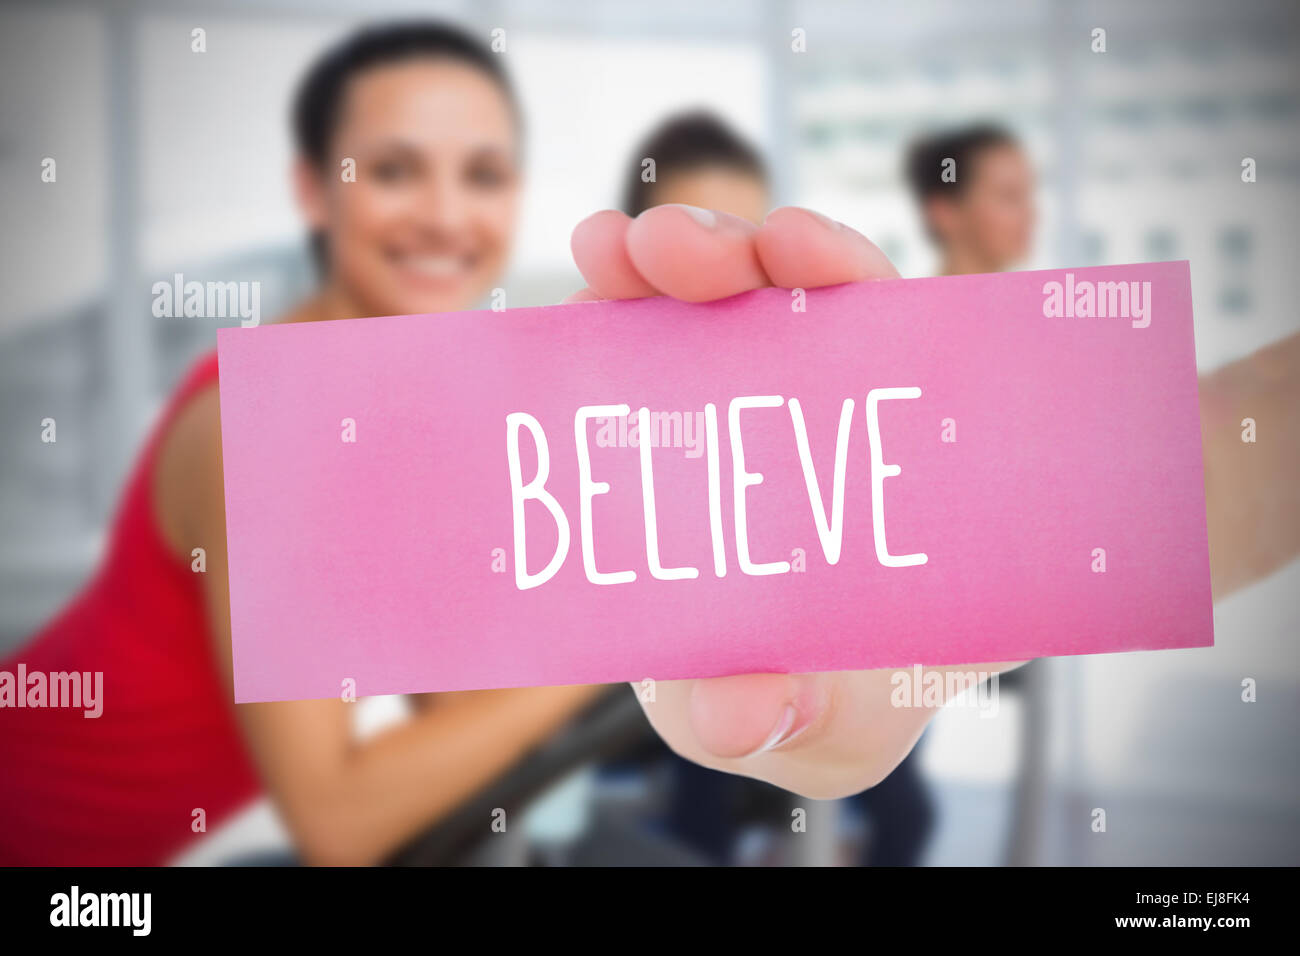 Woman holding pink card saying believe - Stock Image